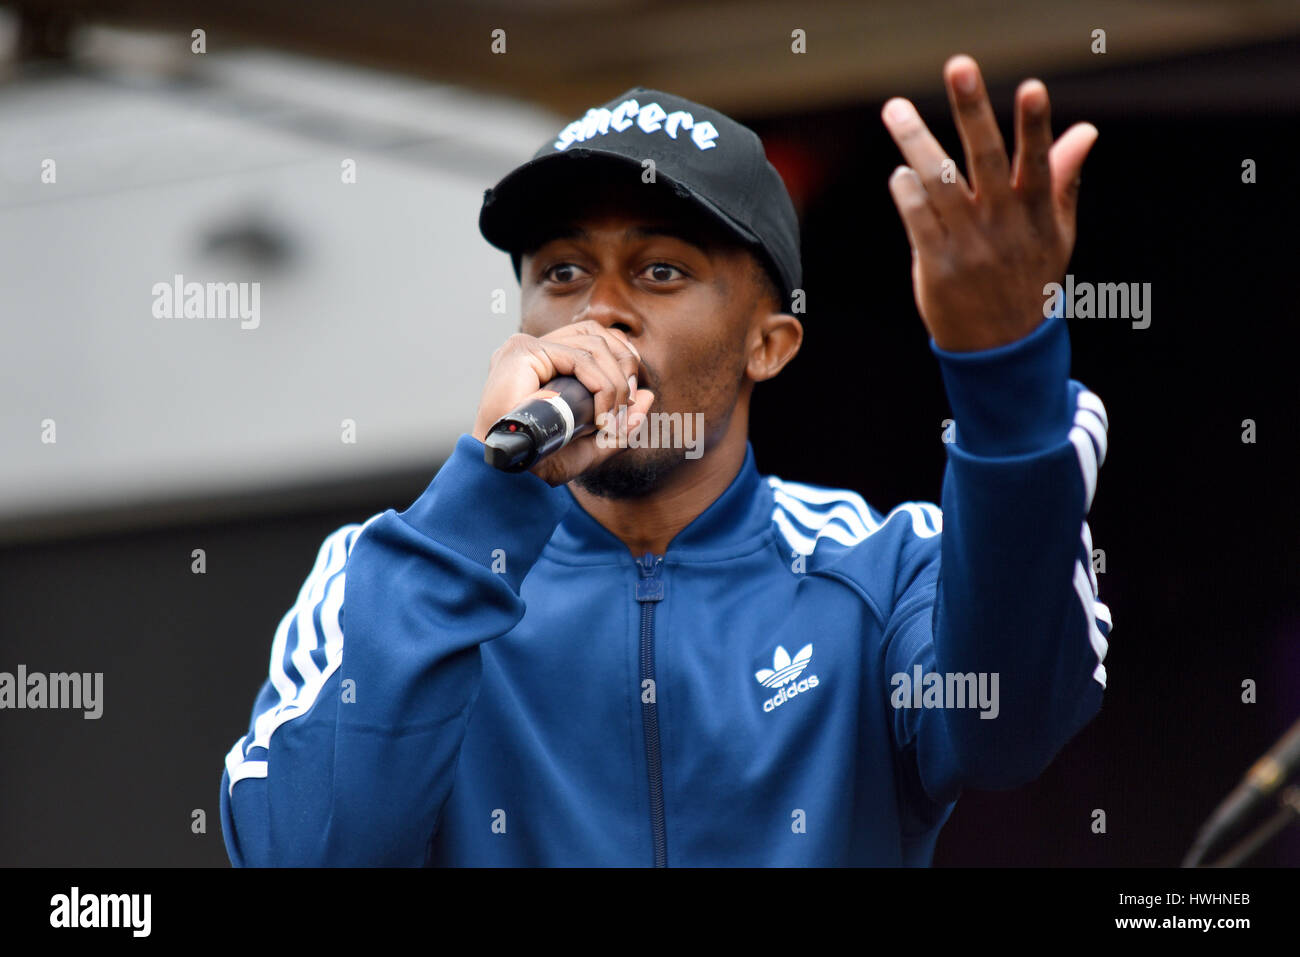 E. Mak singing at the UN Anti racism rally in Parliament Square, London - Stock Image